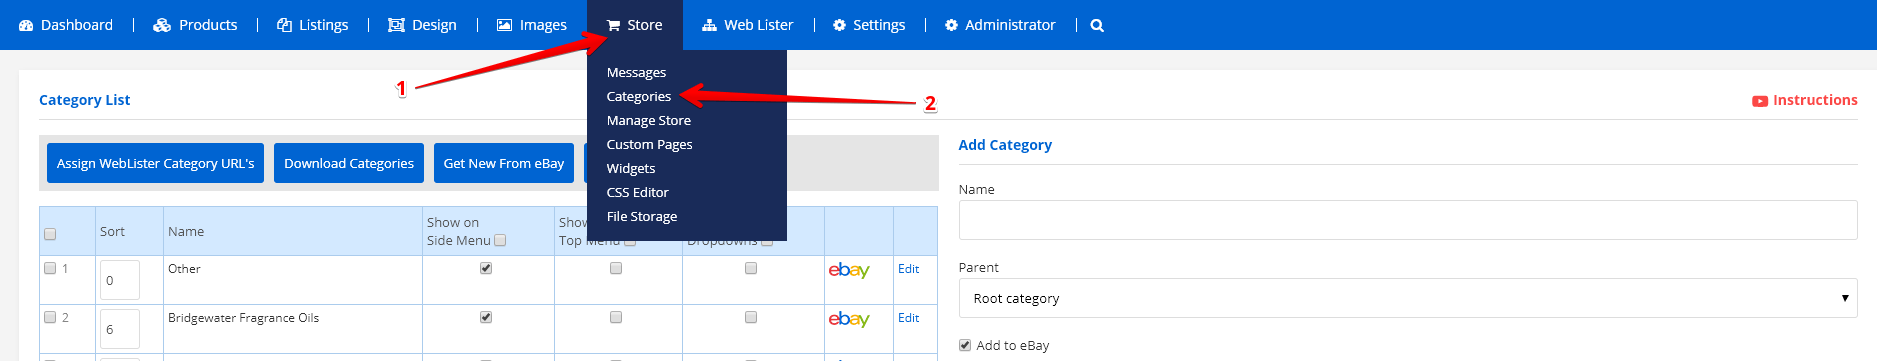 store-categories-ad-lister